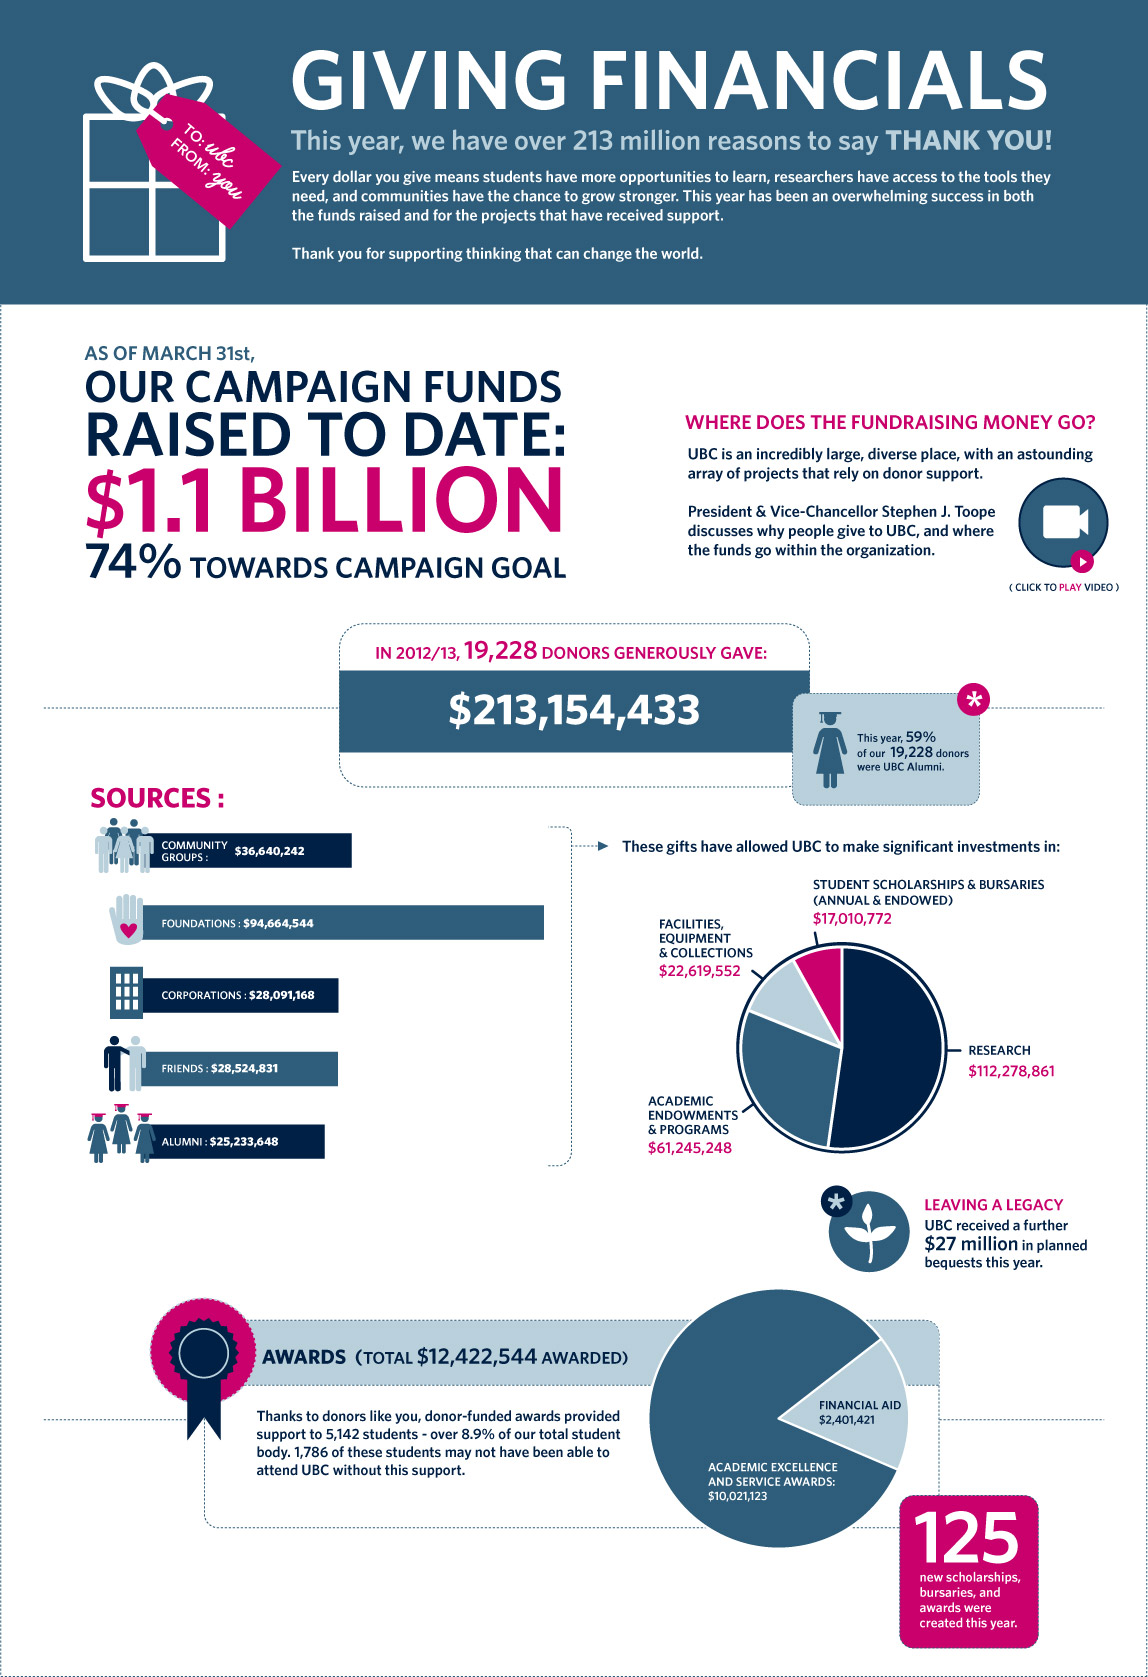 Report on Giving - Financials 2013